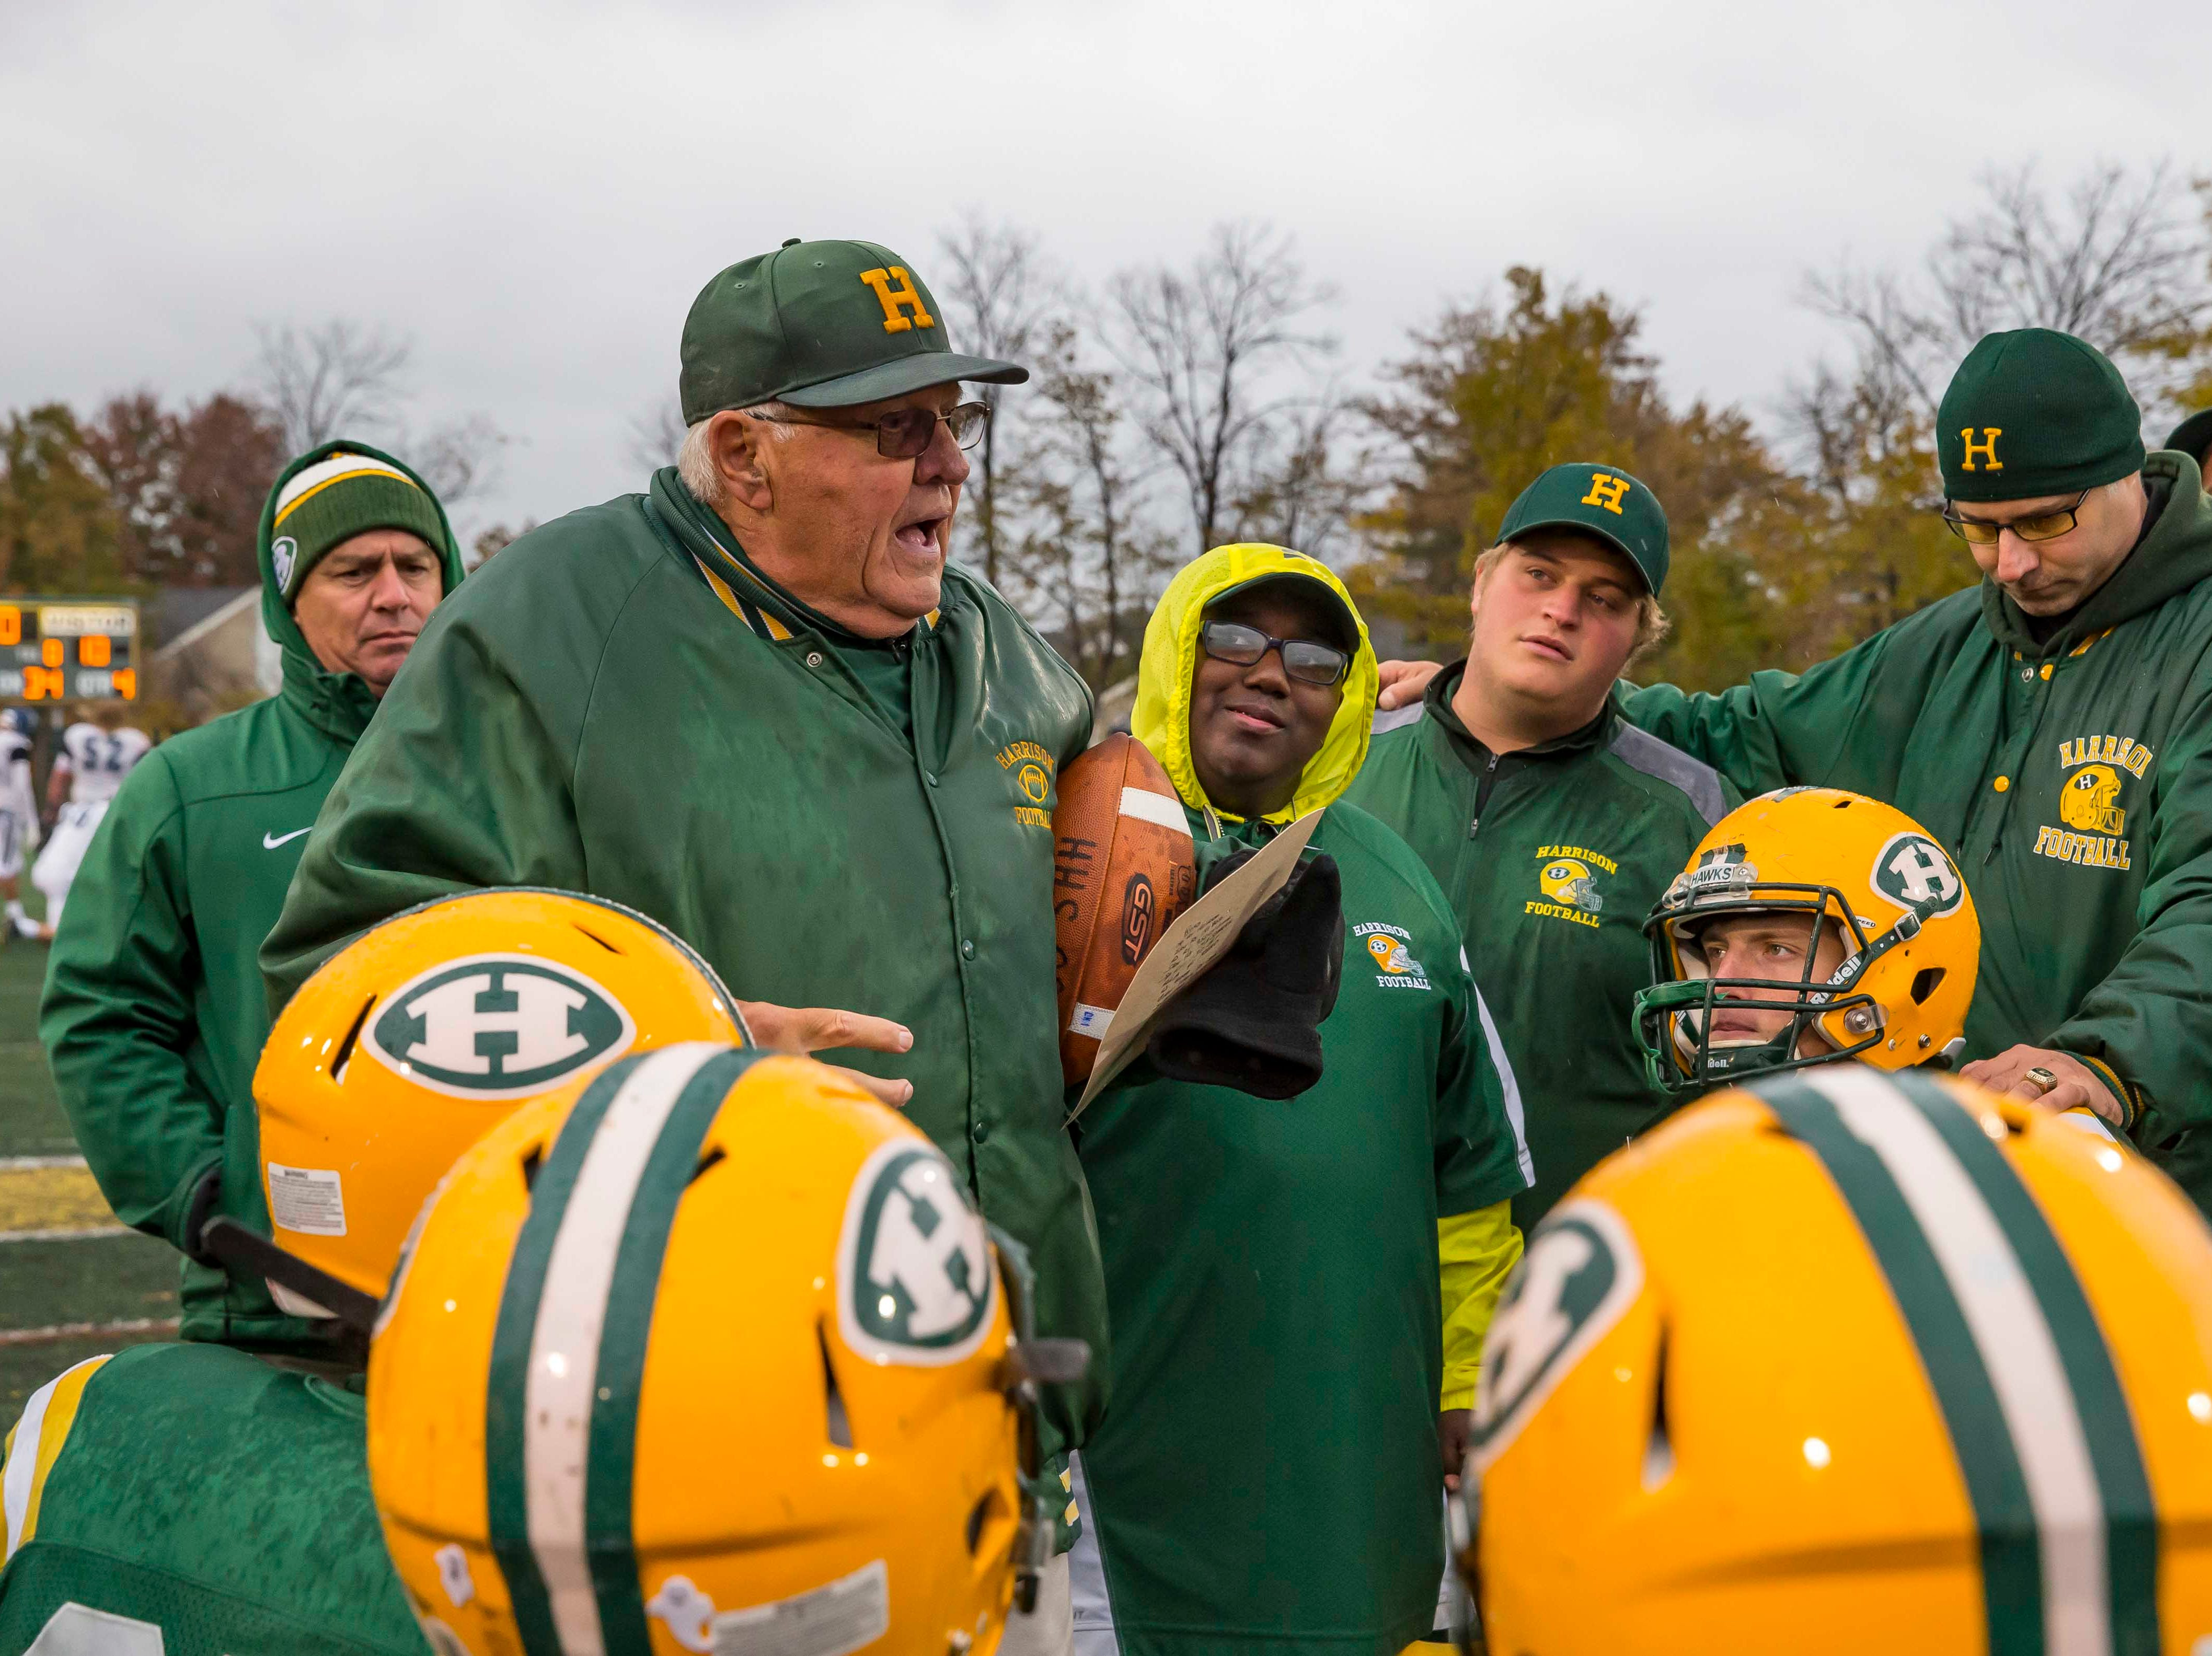 Head coach John Herrington of Farmington Hills Harrison talks to his team after they defeated Cranbrook Kingswood 24-10 at the John Herrington Athletic Complex at Buller Field in Farmington Hills, Michigan.